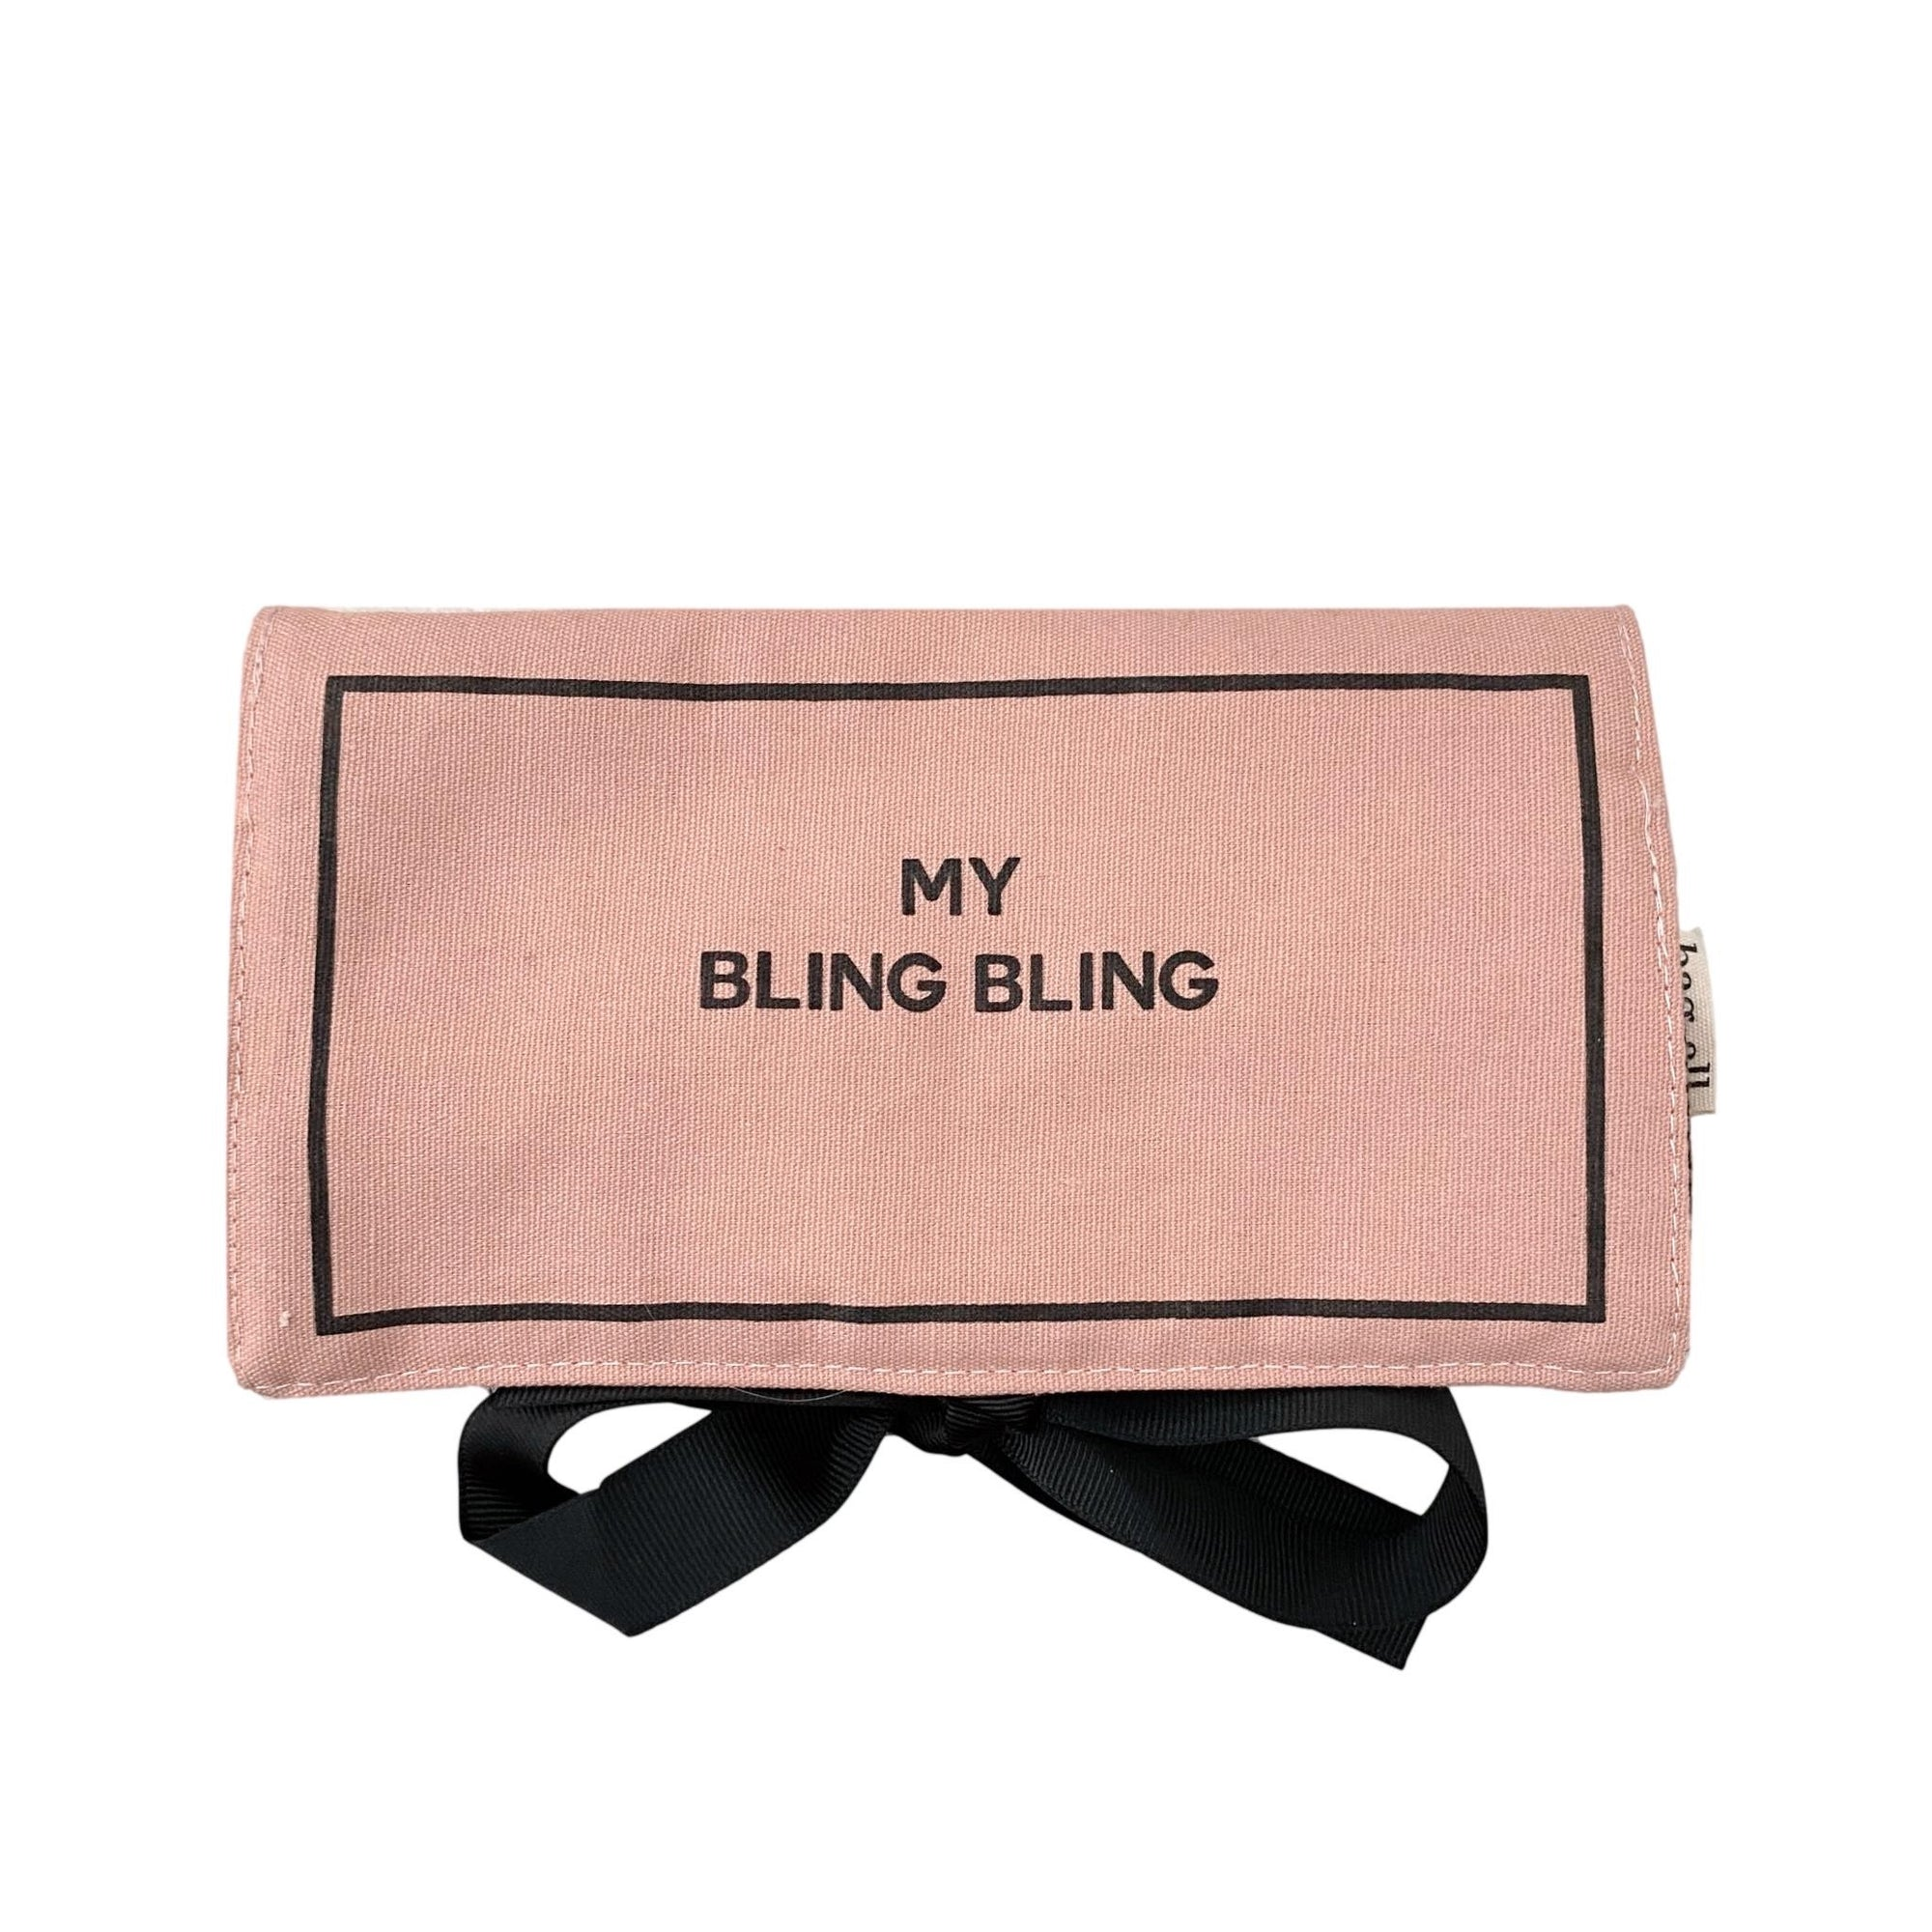 Jewelry Case Bling Bling Pink - Bag-all Paris